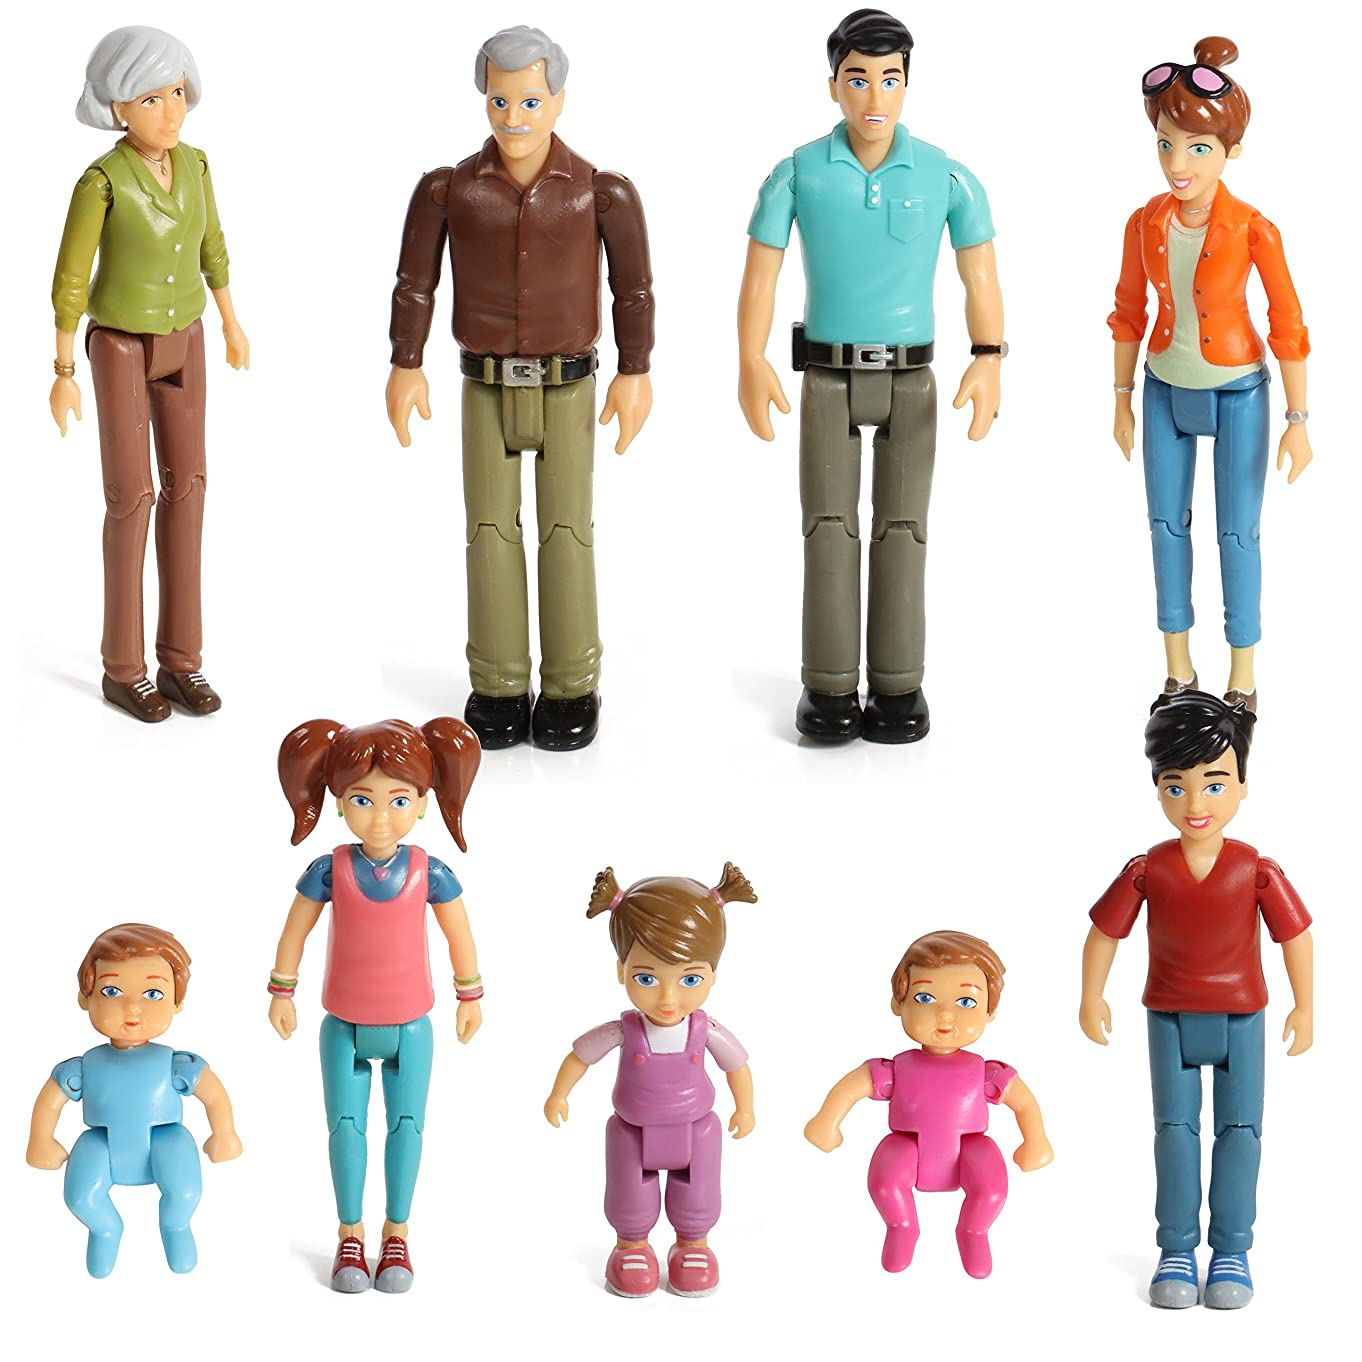 Beverly Hills Doll Collection Sweet Li'l Family Set of 9 Action Figure Set- Grandpa, Grandma, Mom, Dad, Sister, Brother, Toddler, Twin Boy & Girl l43835238